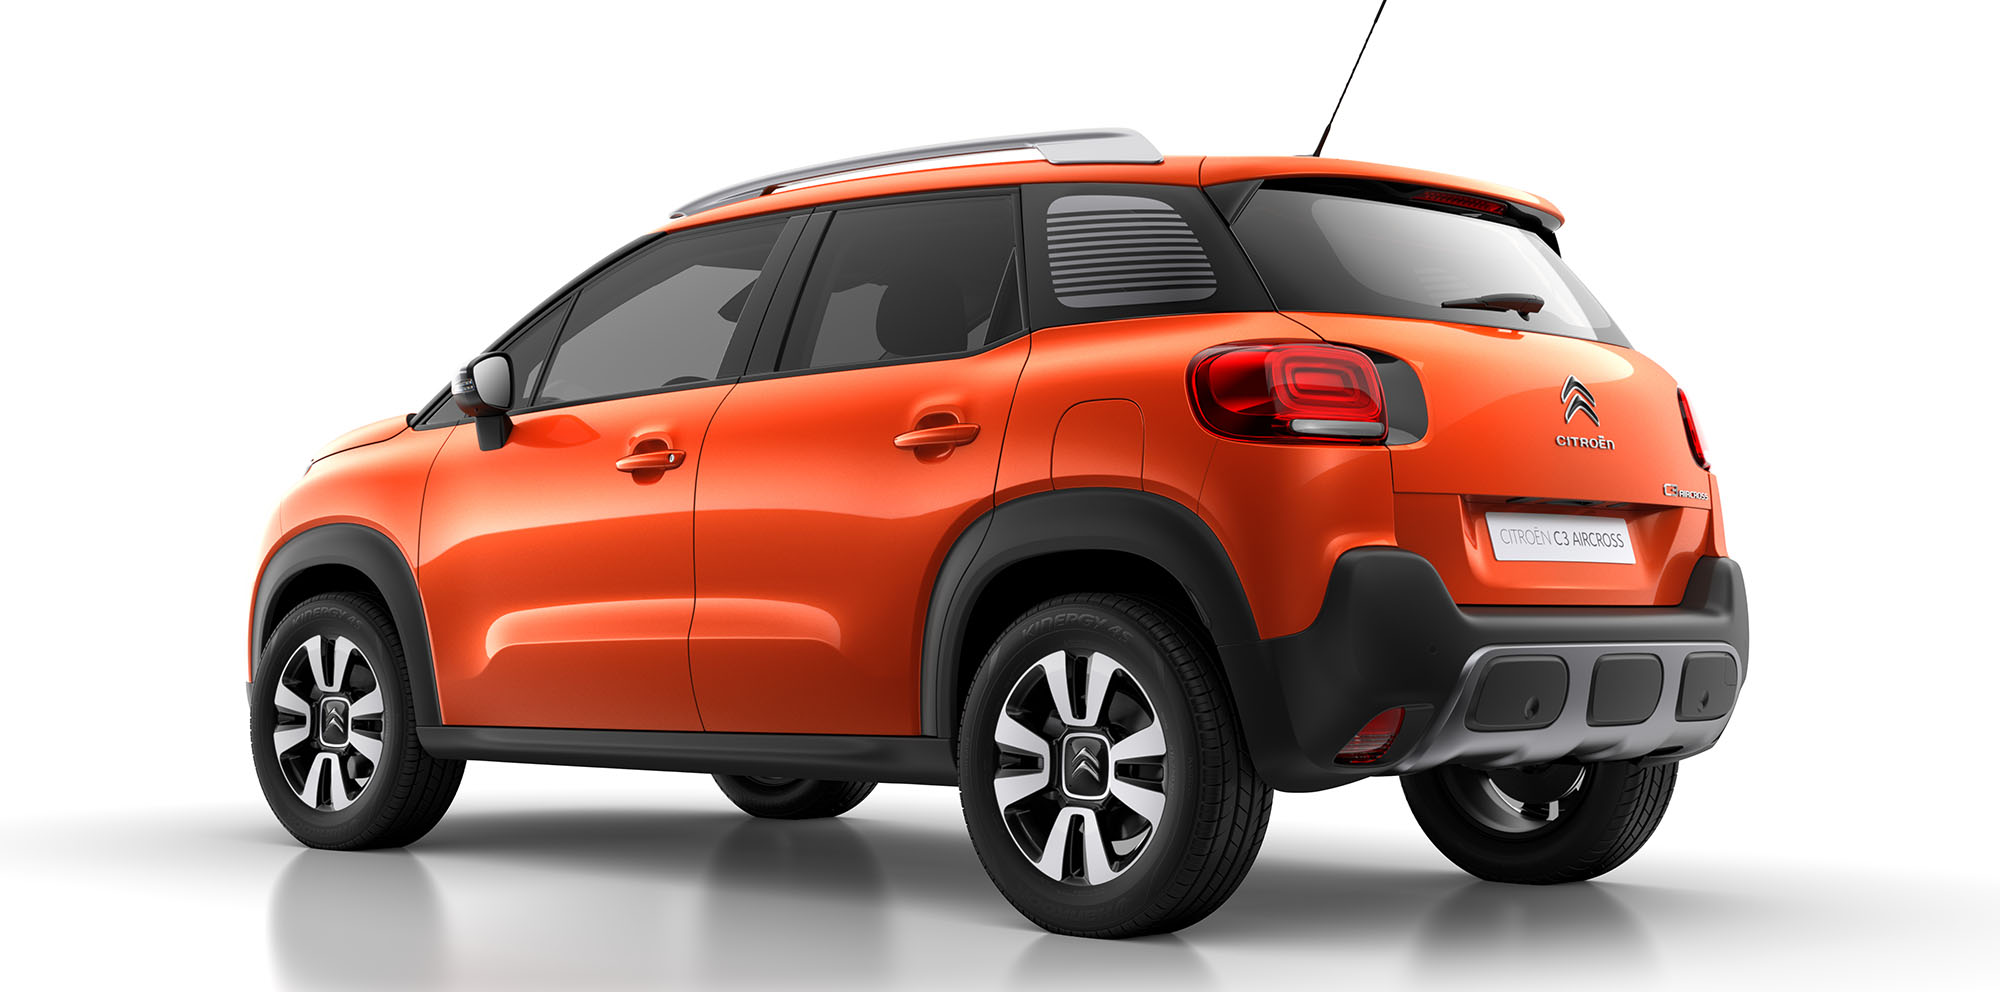 2018 Citroen C3 Aircross unveiled - Photos (1 of 5)